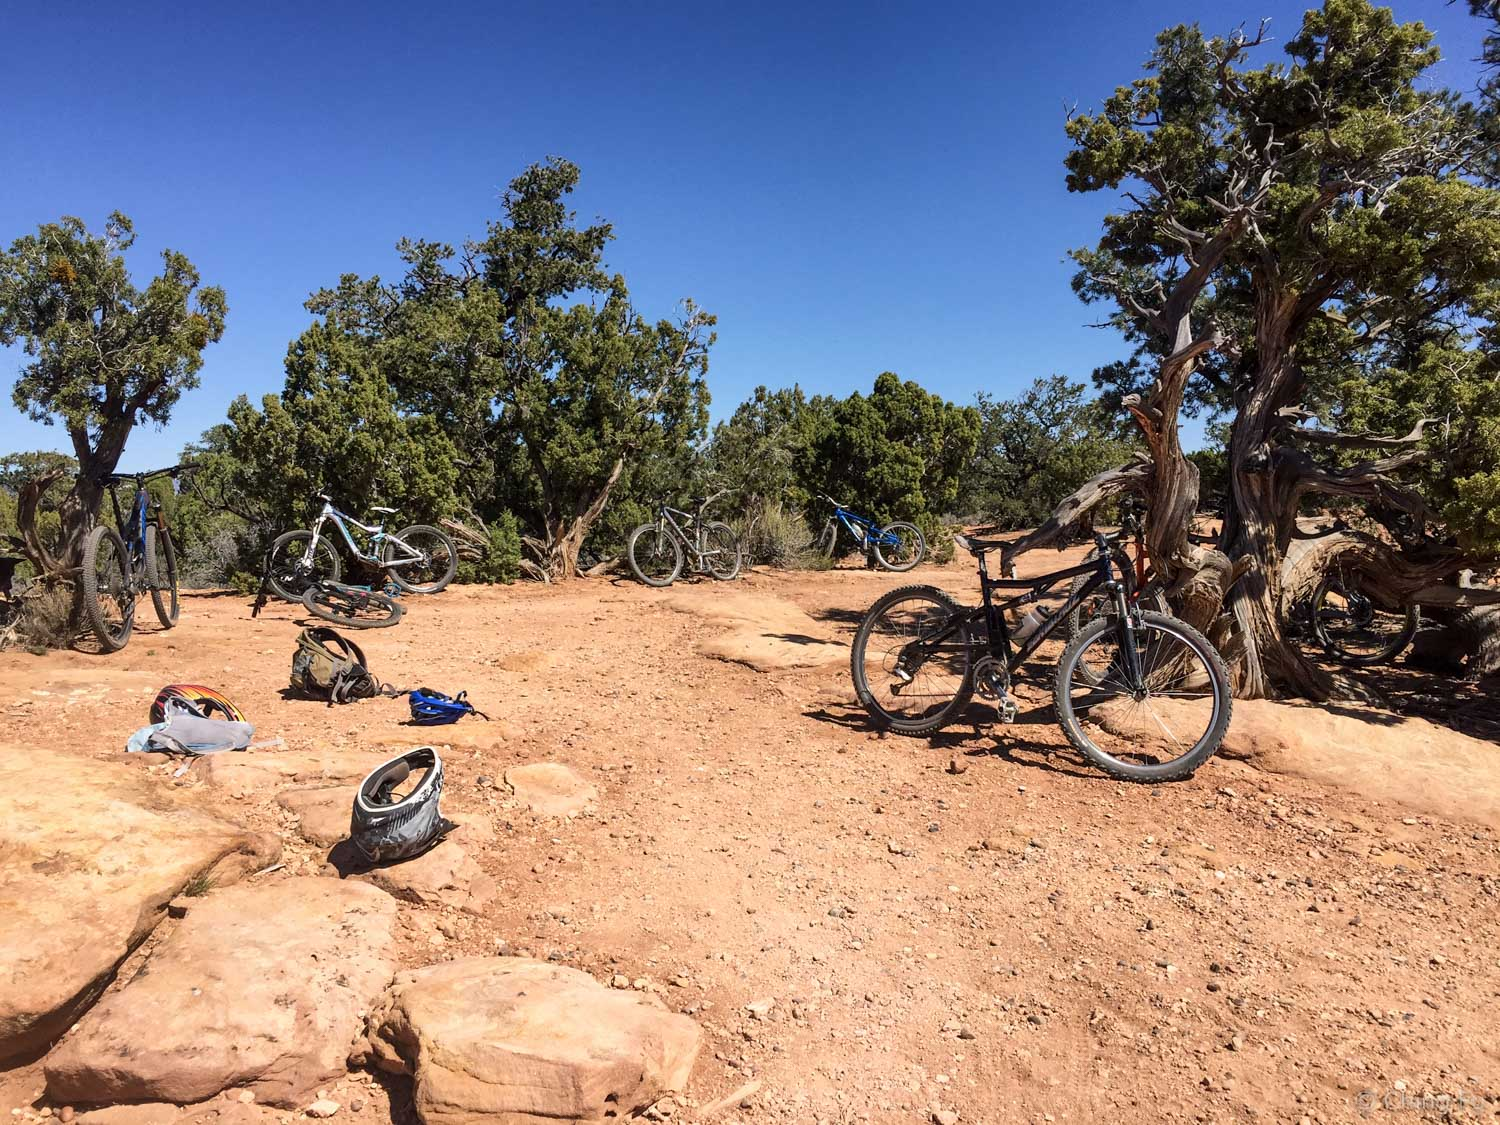 Our myraid mountain bikes at the scenic overlook.